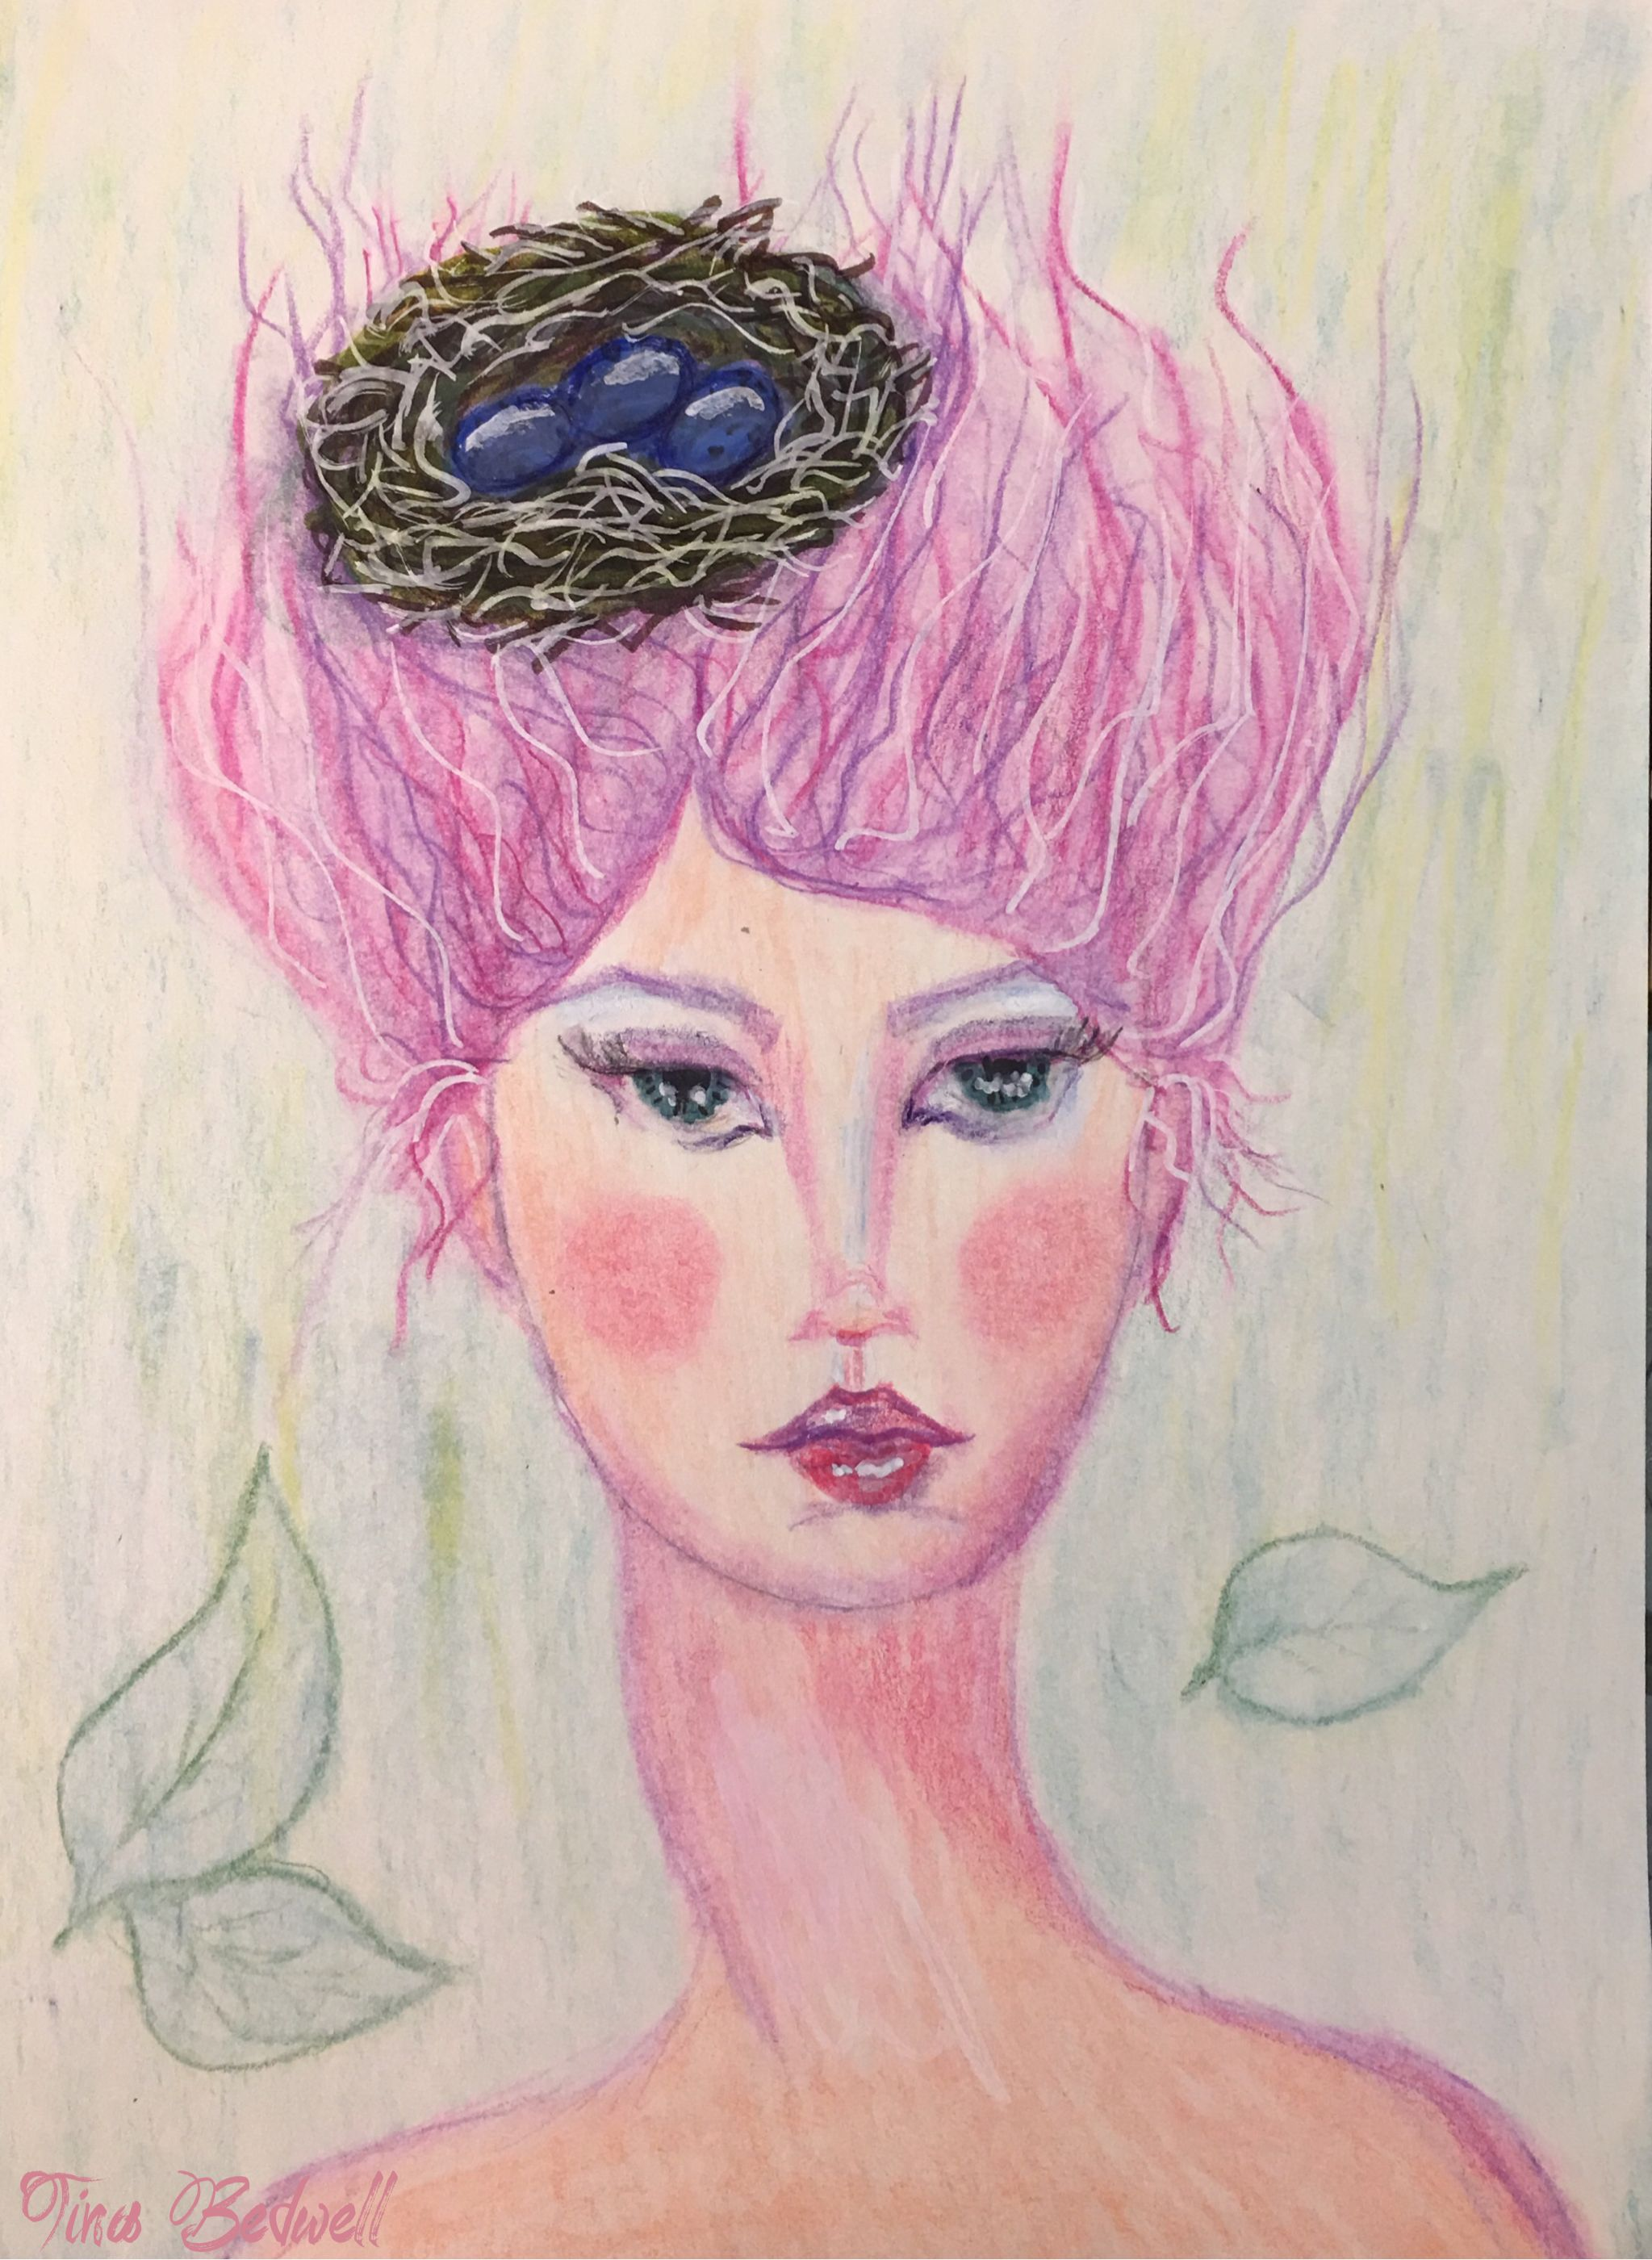 48 Ideas For Painting Ideas Watercolor Pencils Painting In 2020